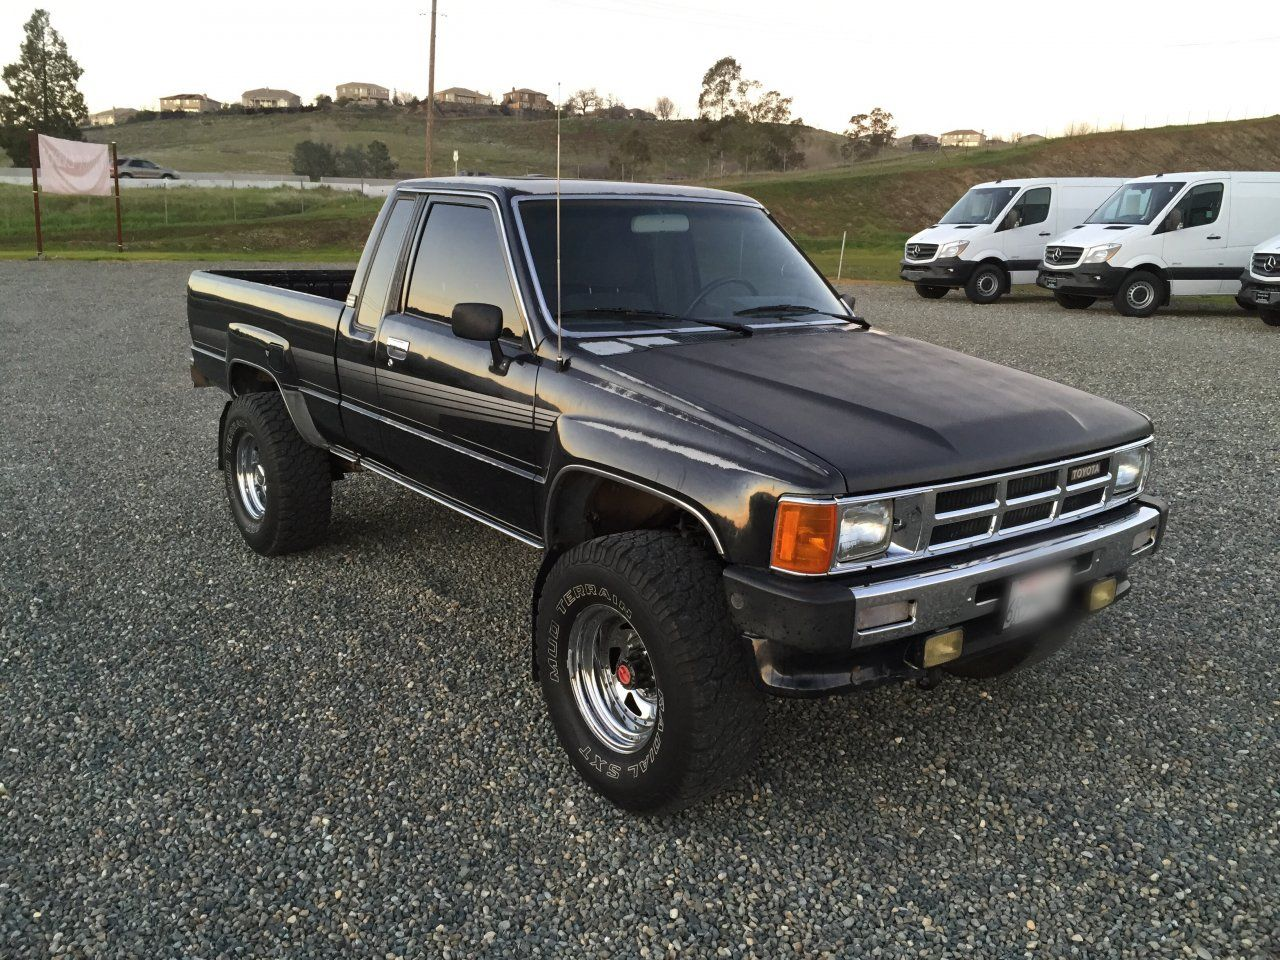 For Sale 1986 Toyota 4x4 Xtra Cab Turbo Toyota Trucks Toyota 4x4 Toyota Pickup For Sale